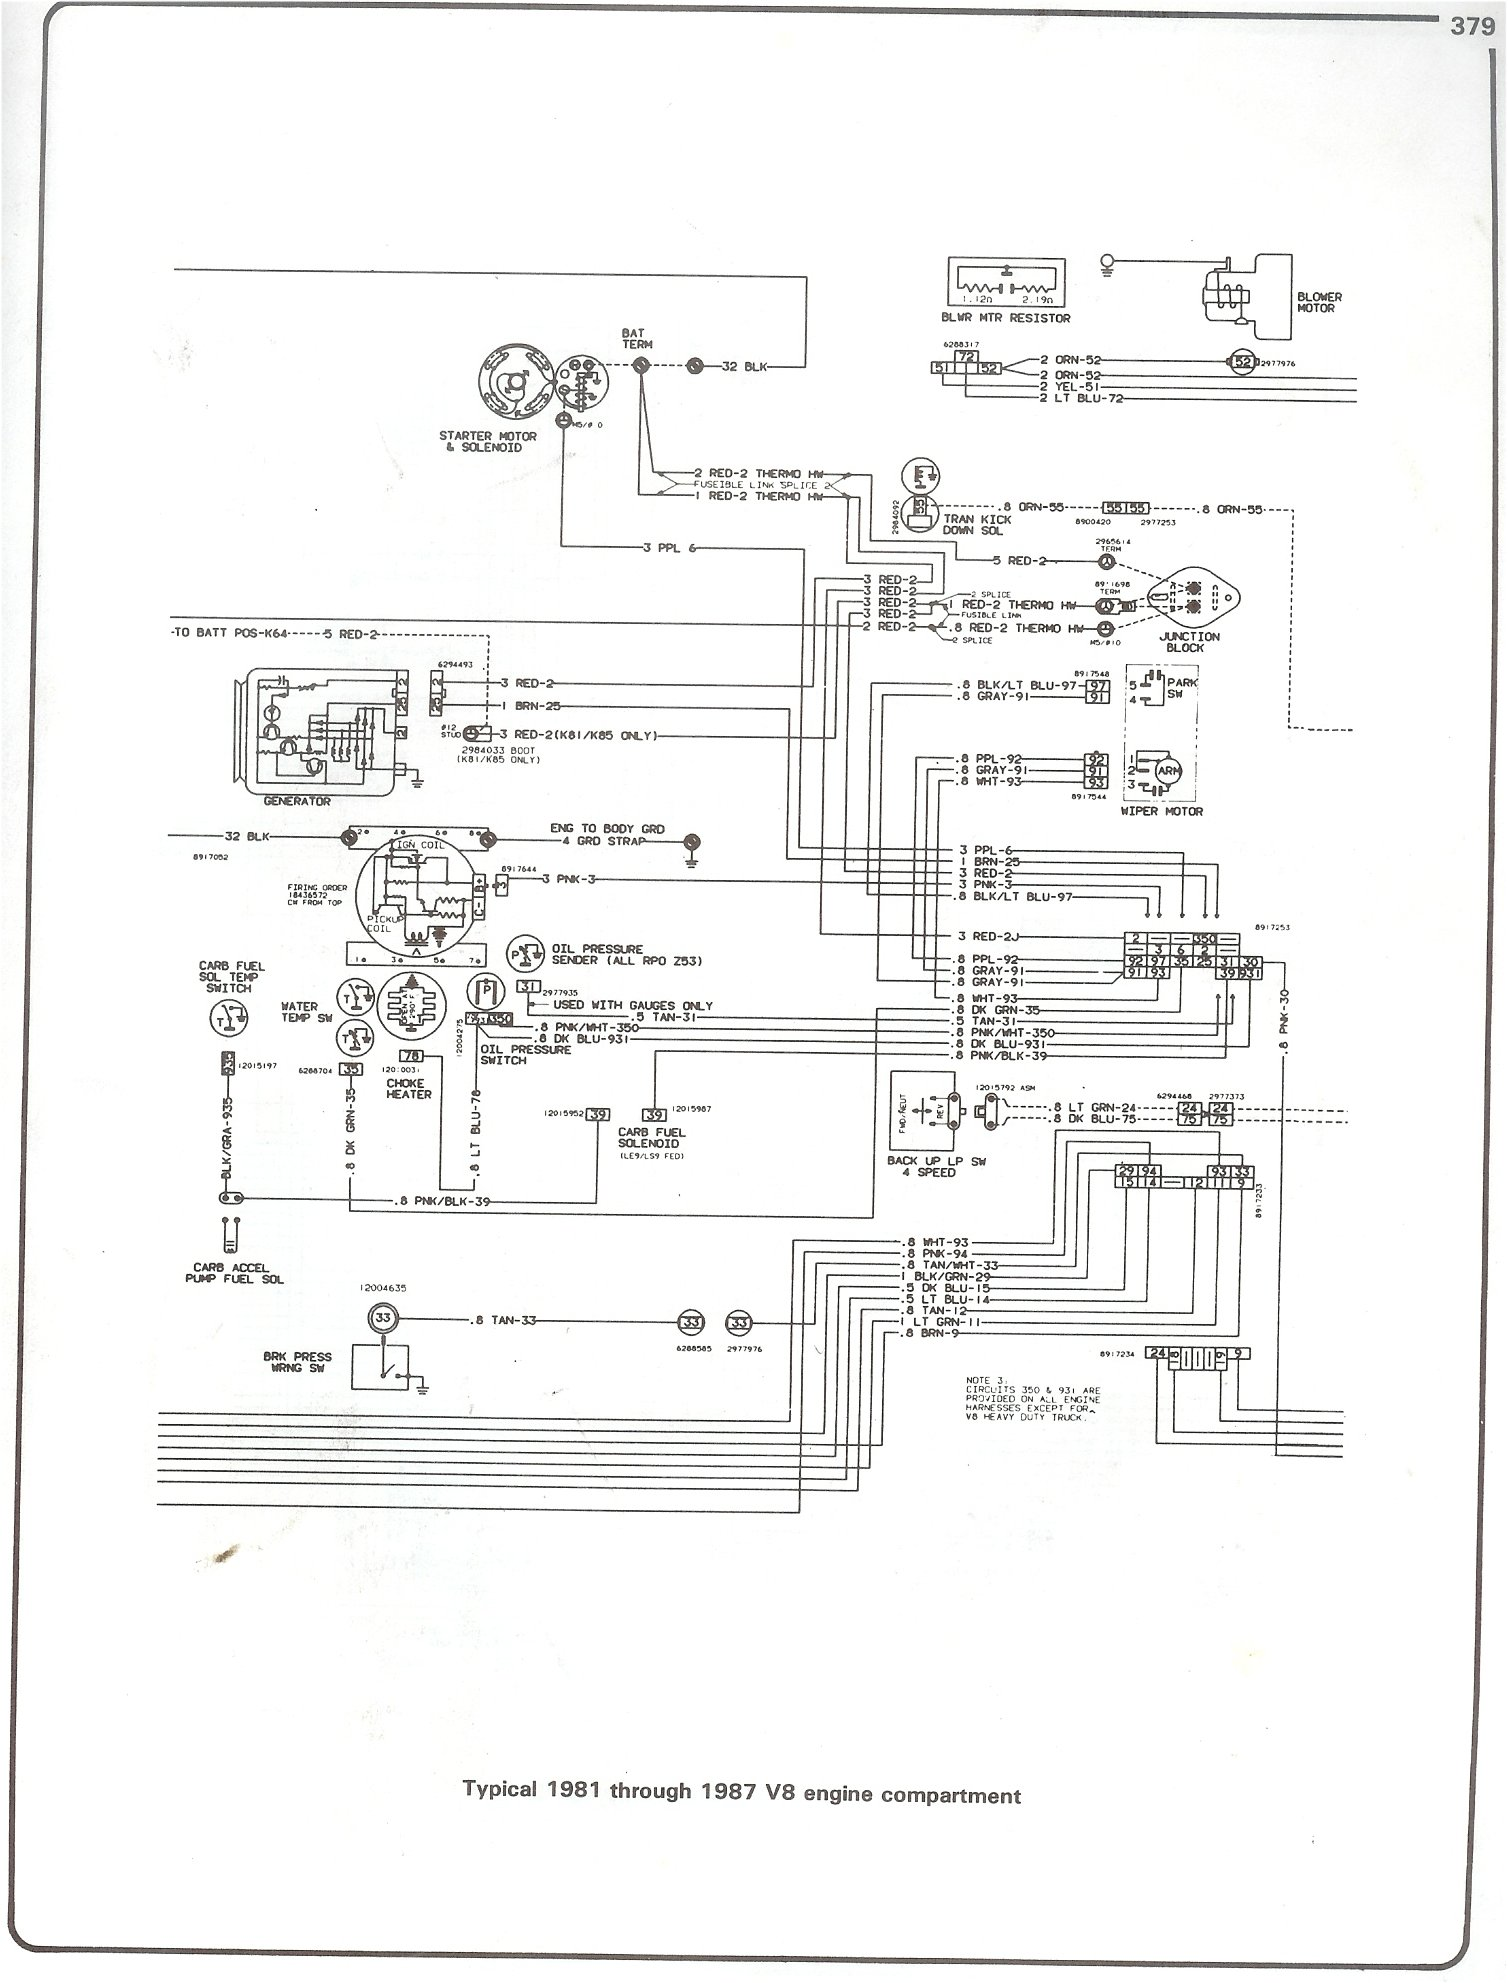 87 chevy silverado wiring detailed schematics diagram rh jvpacks com 1990 Chevy  2500 4WD Wiring-Diagram 1979 Chevy Alternator Wiring Diagram